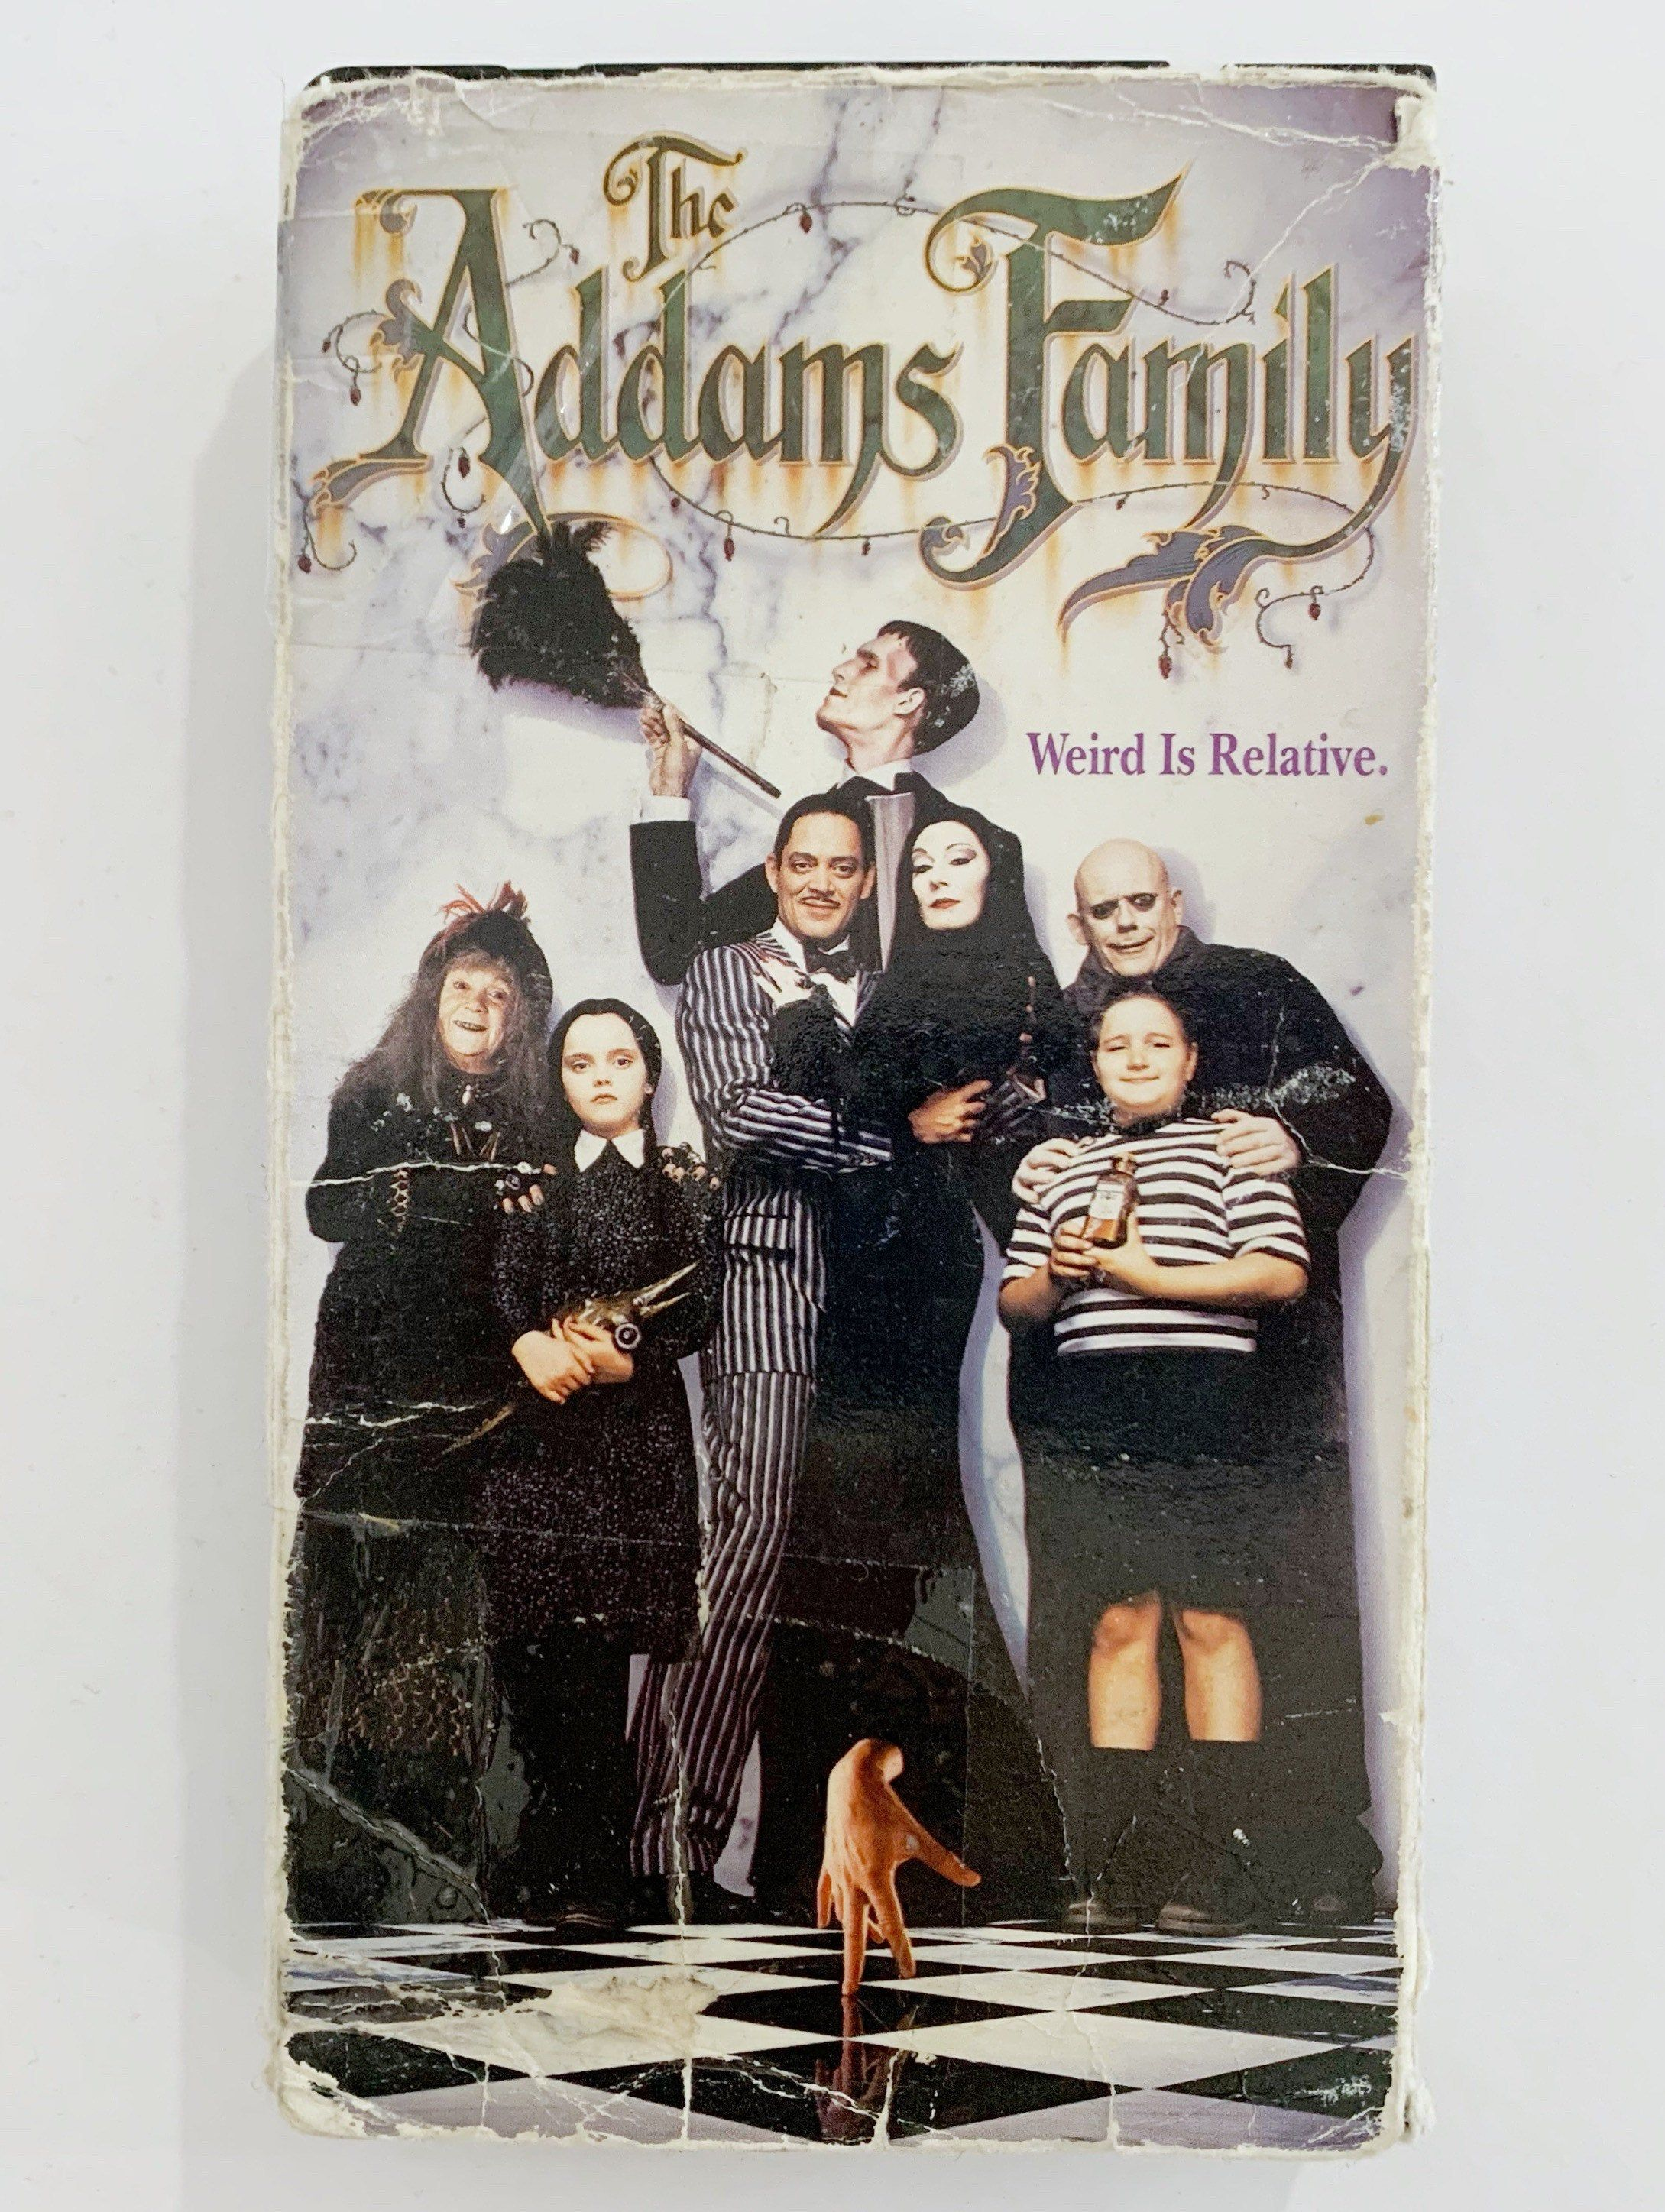 VTG 90's The Adams Family VHS Tape McDonalds Promotional Movie Release Vintage 1990's